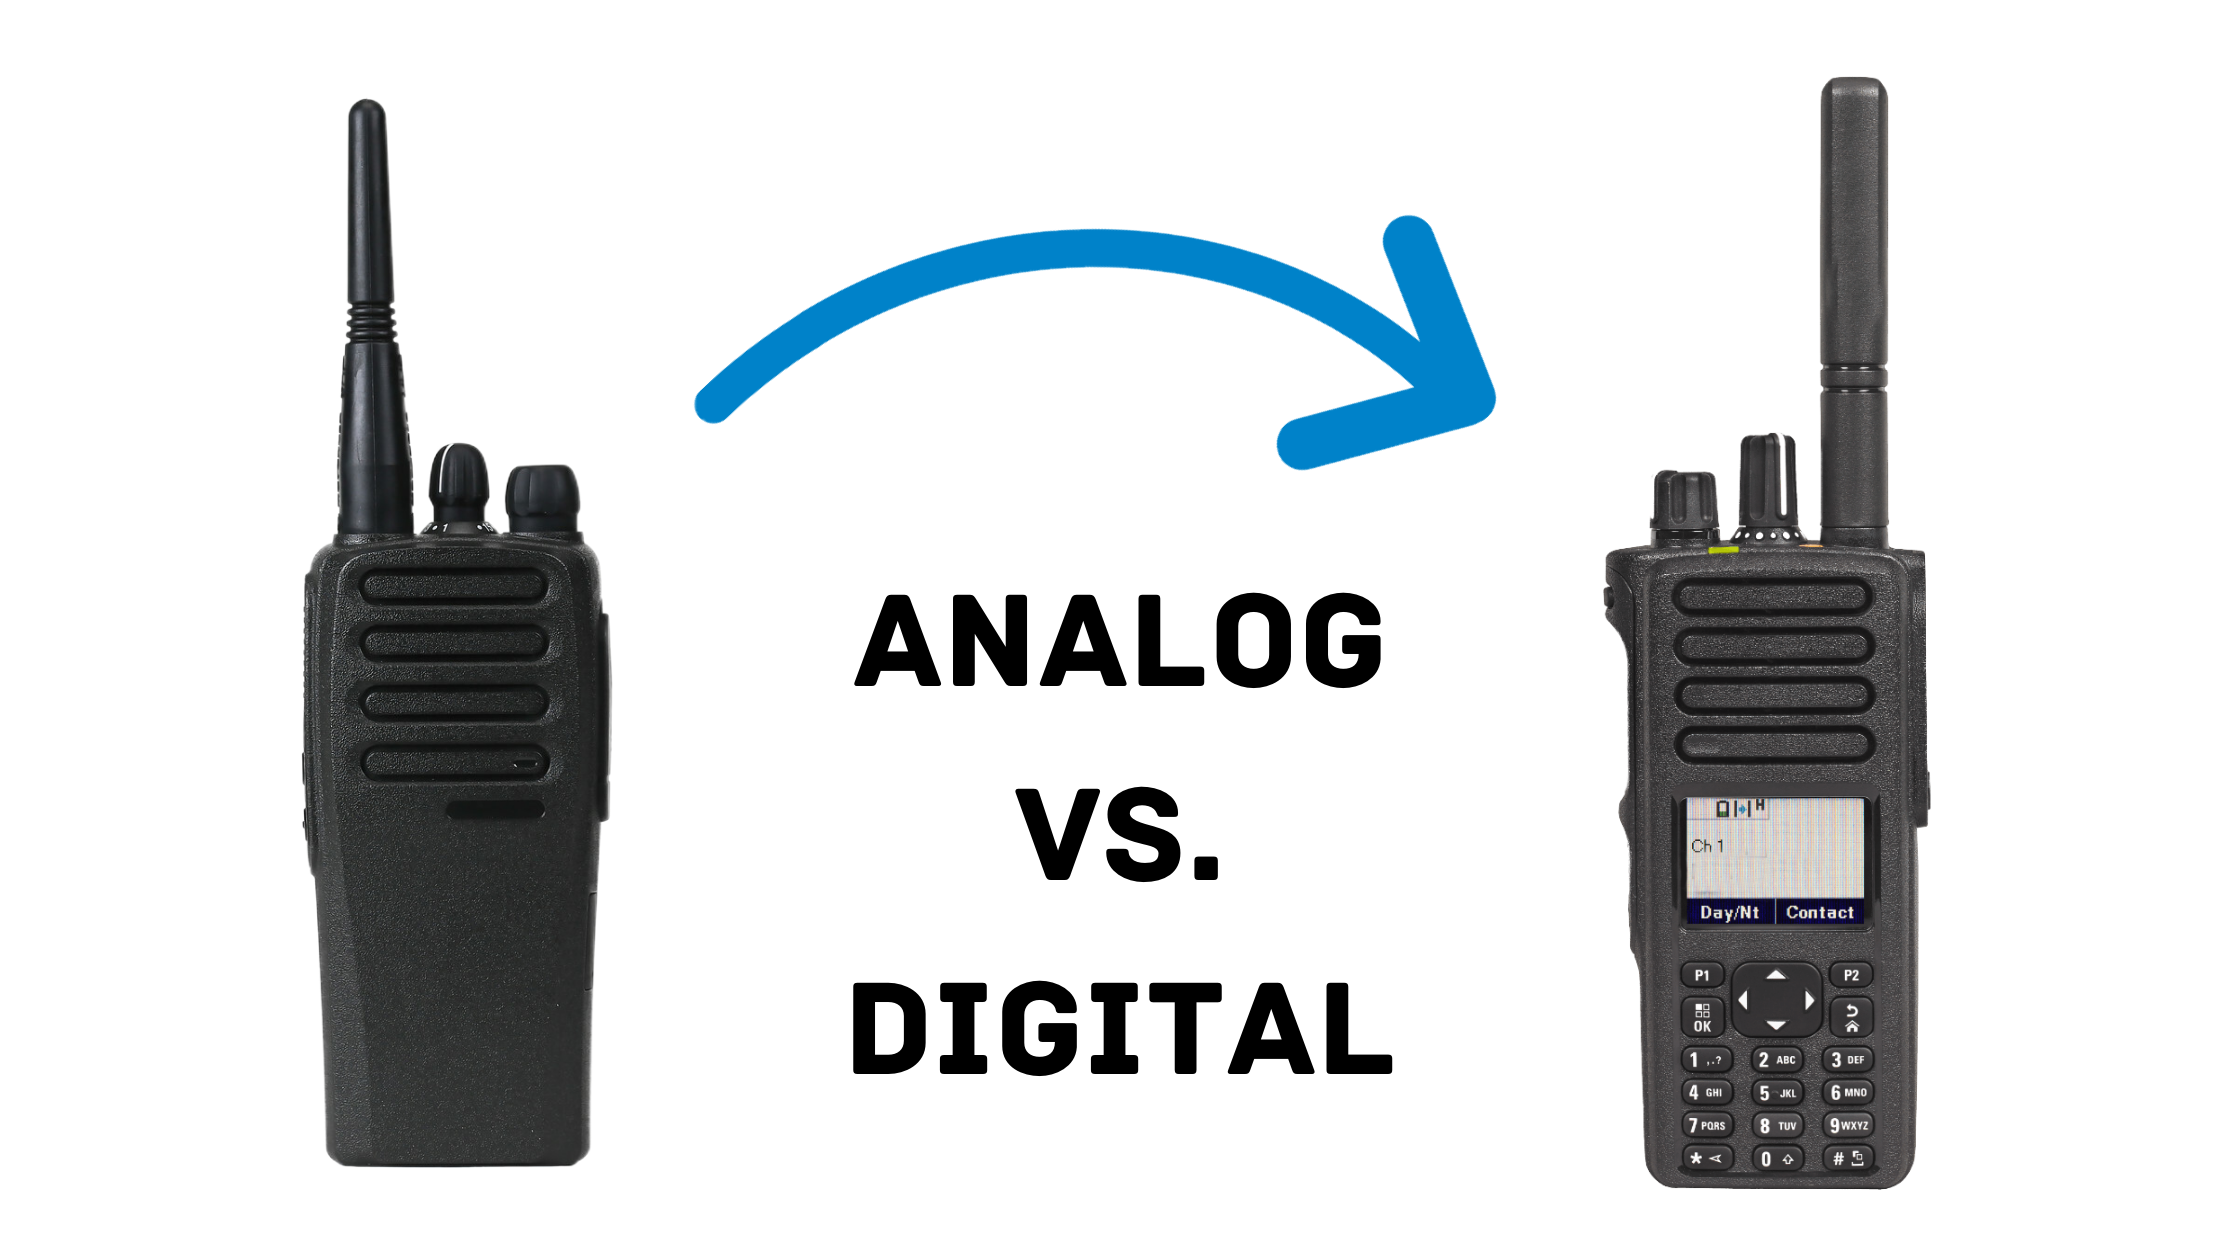 What's the Difference Between Analog and Digital?